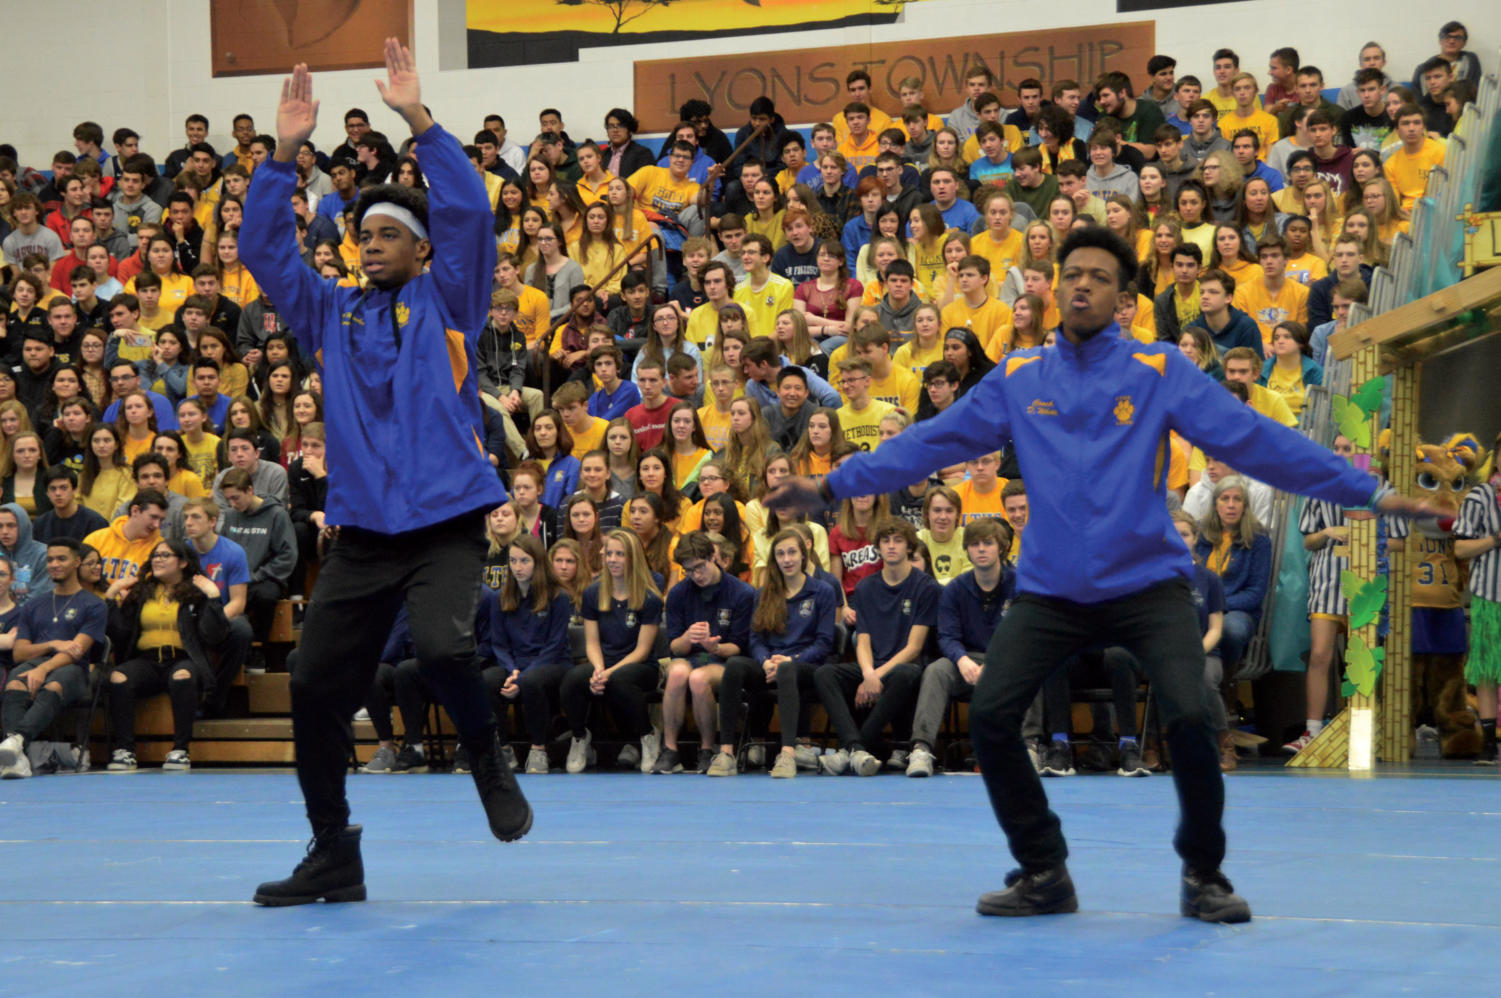 LT+Steppers+provide+musical+entertainment+through+an+engaging+and+interactive+routine.